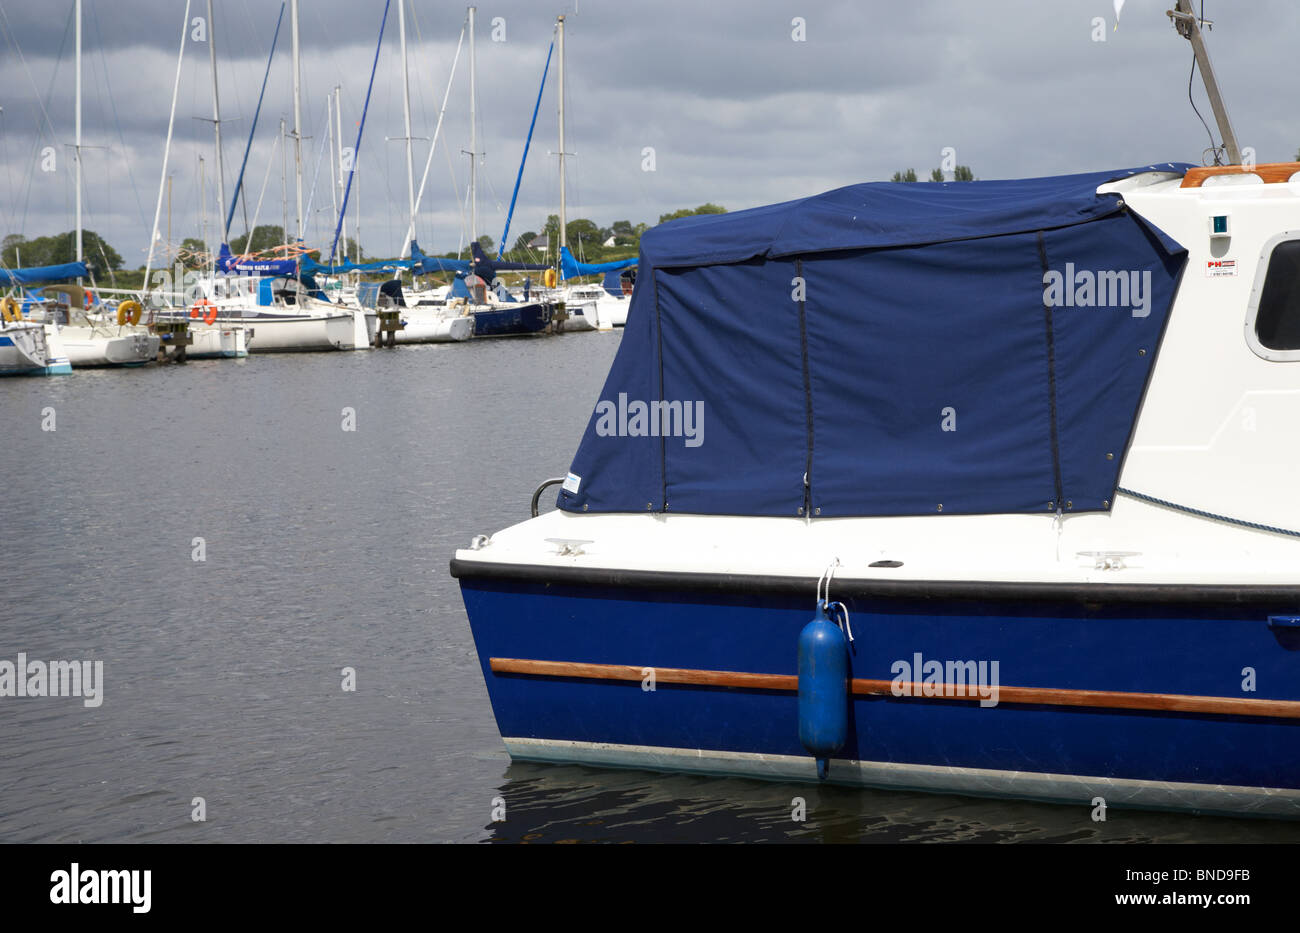 boat canopy on boat berthed in marina county armagh northern ireland uk & boat canopy on boat berthed in marina county armagh northern ...